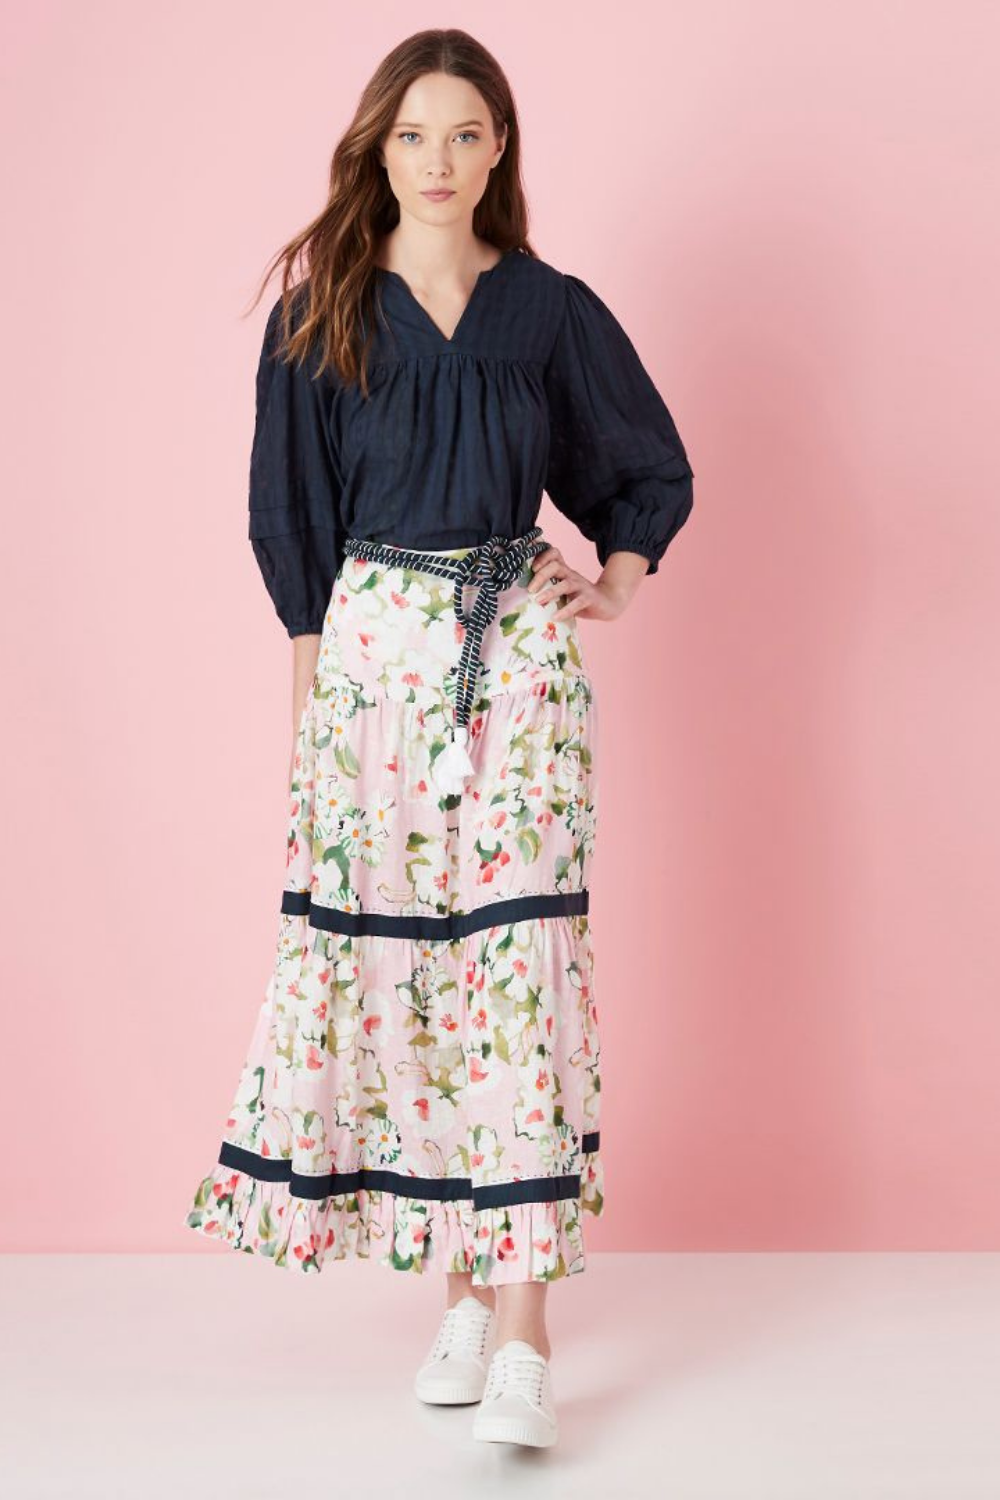 Noosa Tiered Skirt - 2 Colours